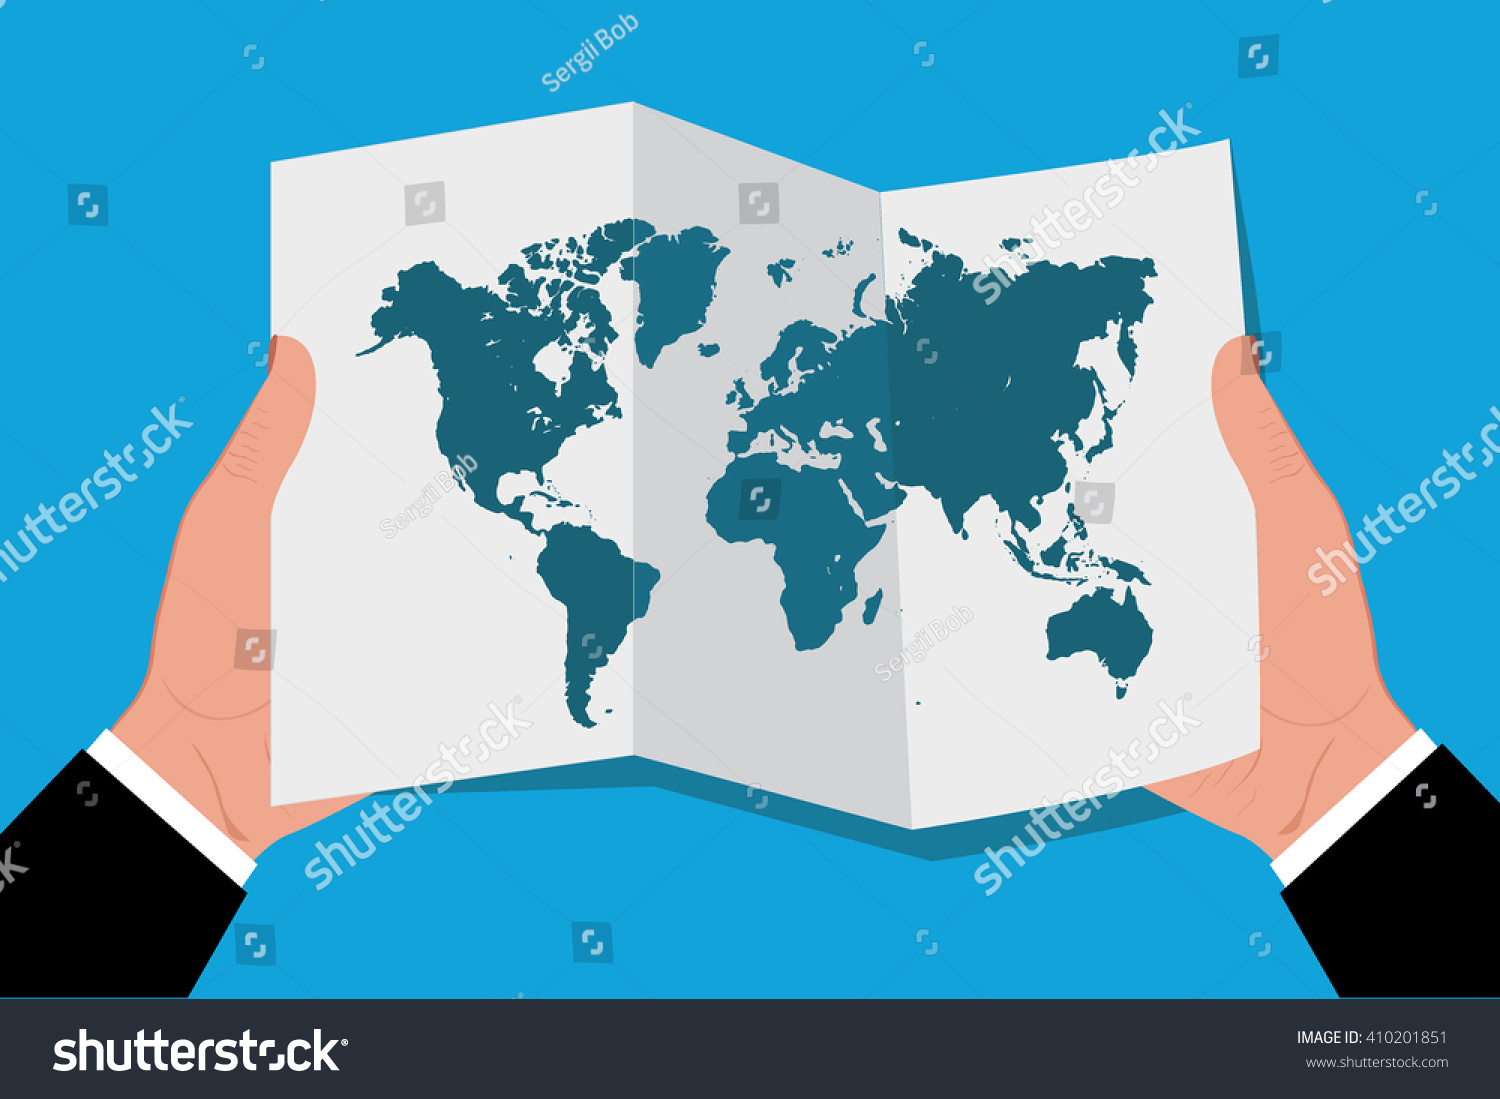 Hands holding world map flat style vectores en stock 410201851 hands holding world map in flat style vector illustration gumiabroncs Gallery